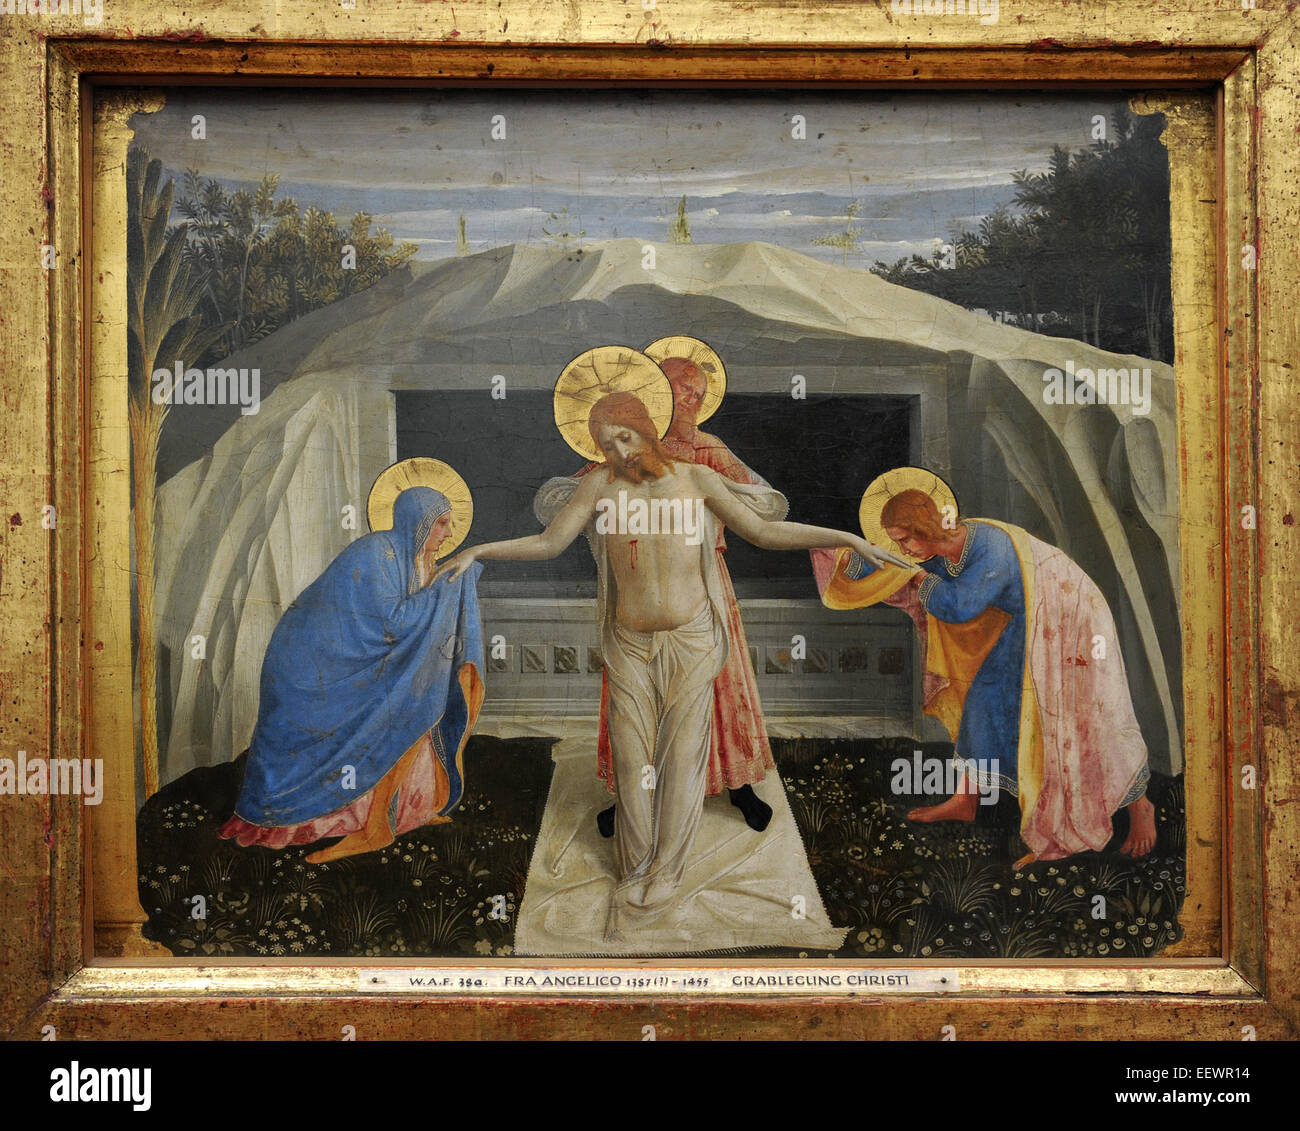 Fra Angelico (1395-1455). Italian Renaissance painter. Entombment of Christ. Abou 1438-1440. Alte Pinakothek. Munich. - Stock Image